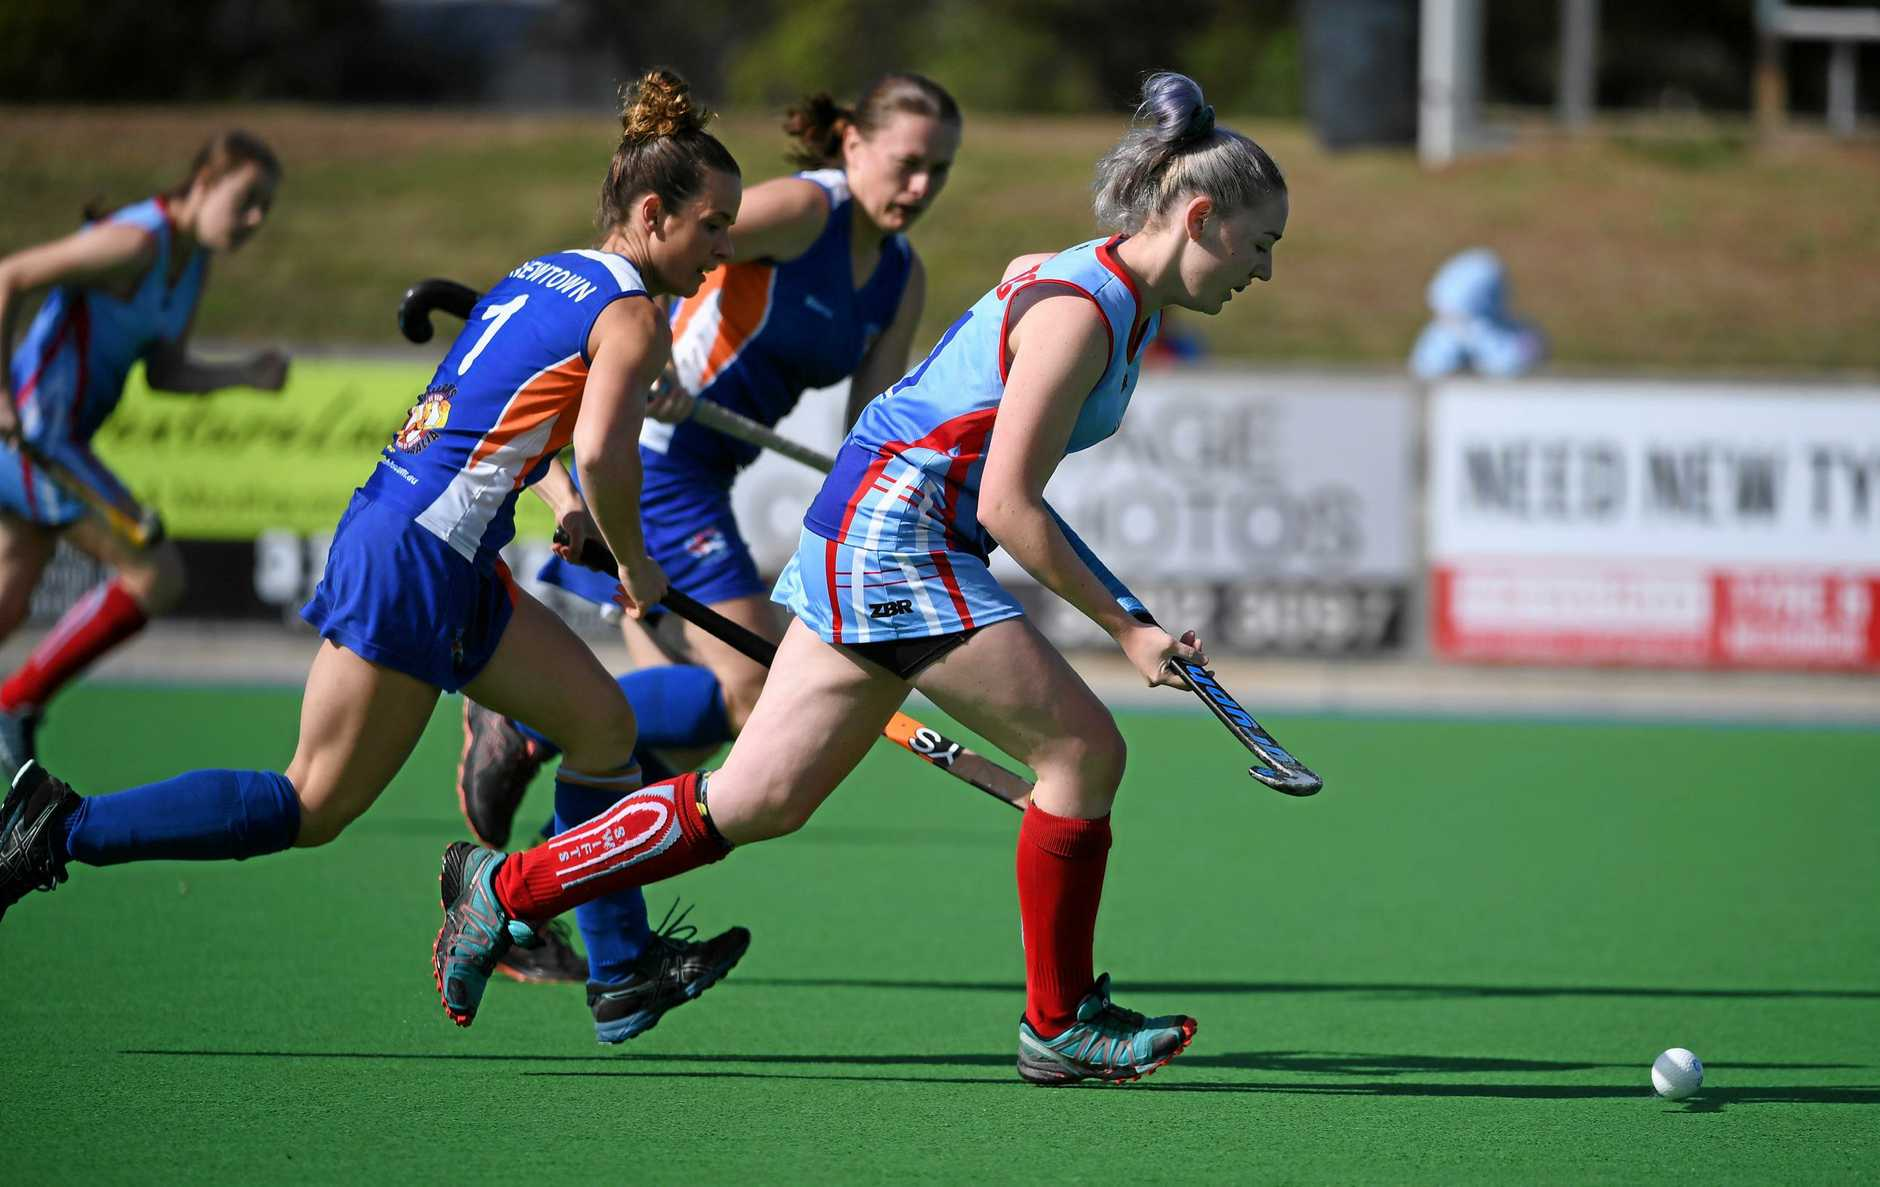 A-grade combined hockey competition played between Swifts and Newtown at the Ipswich Hockey Complex on Sunday.